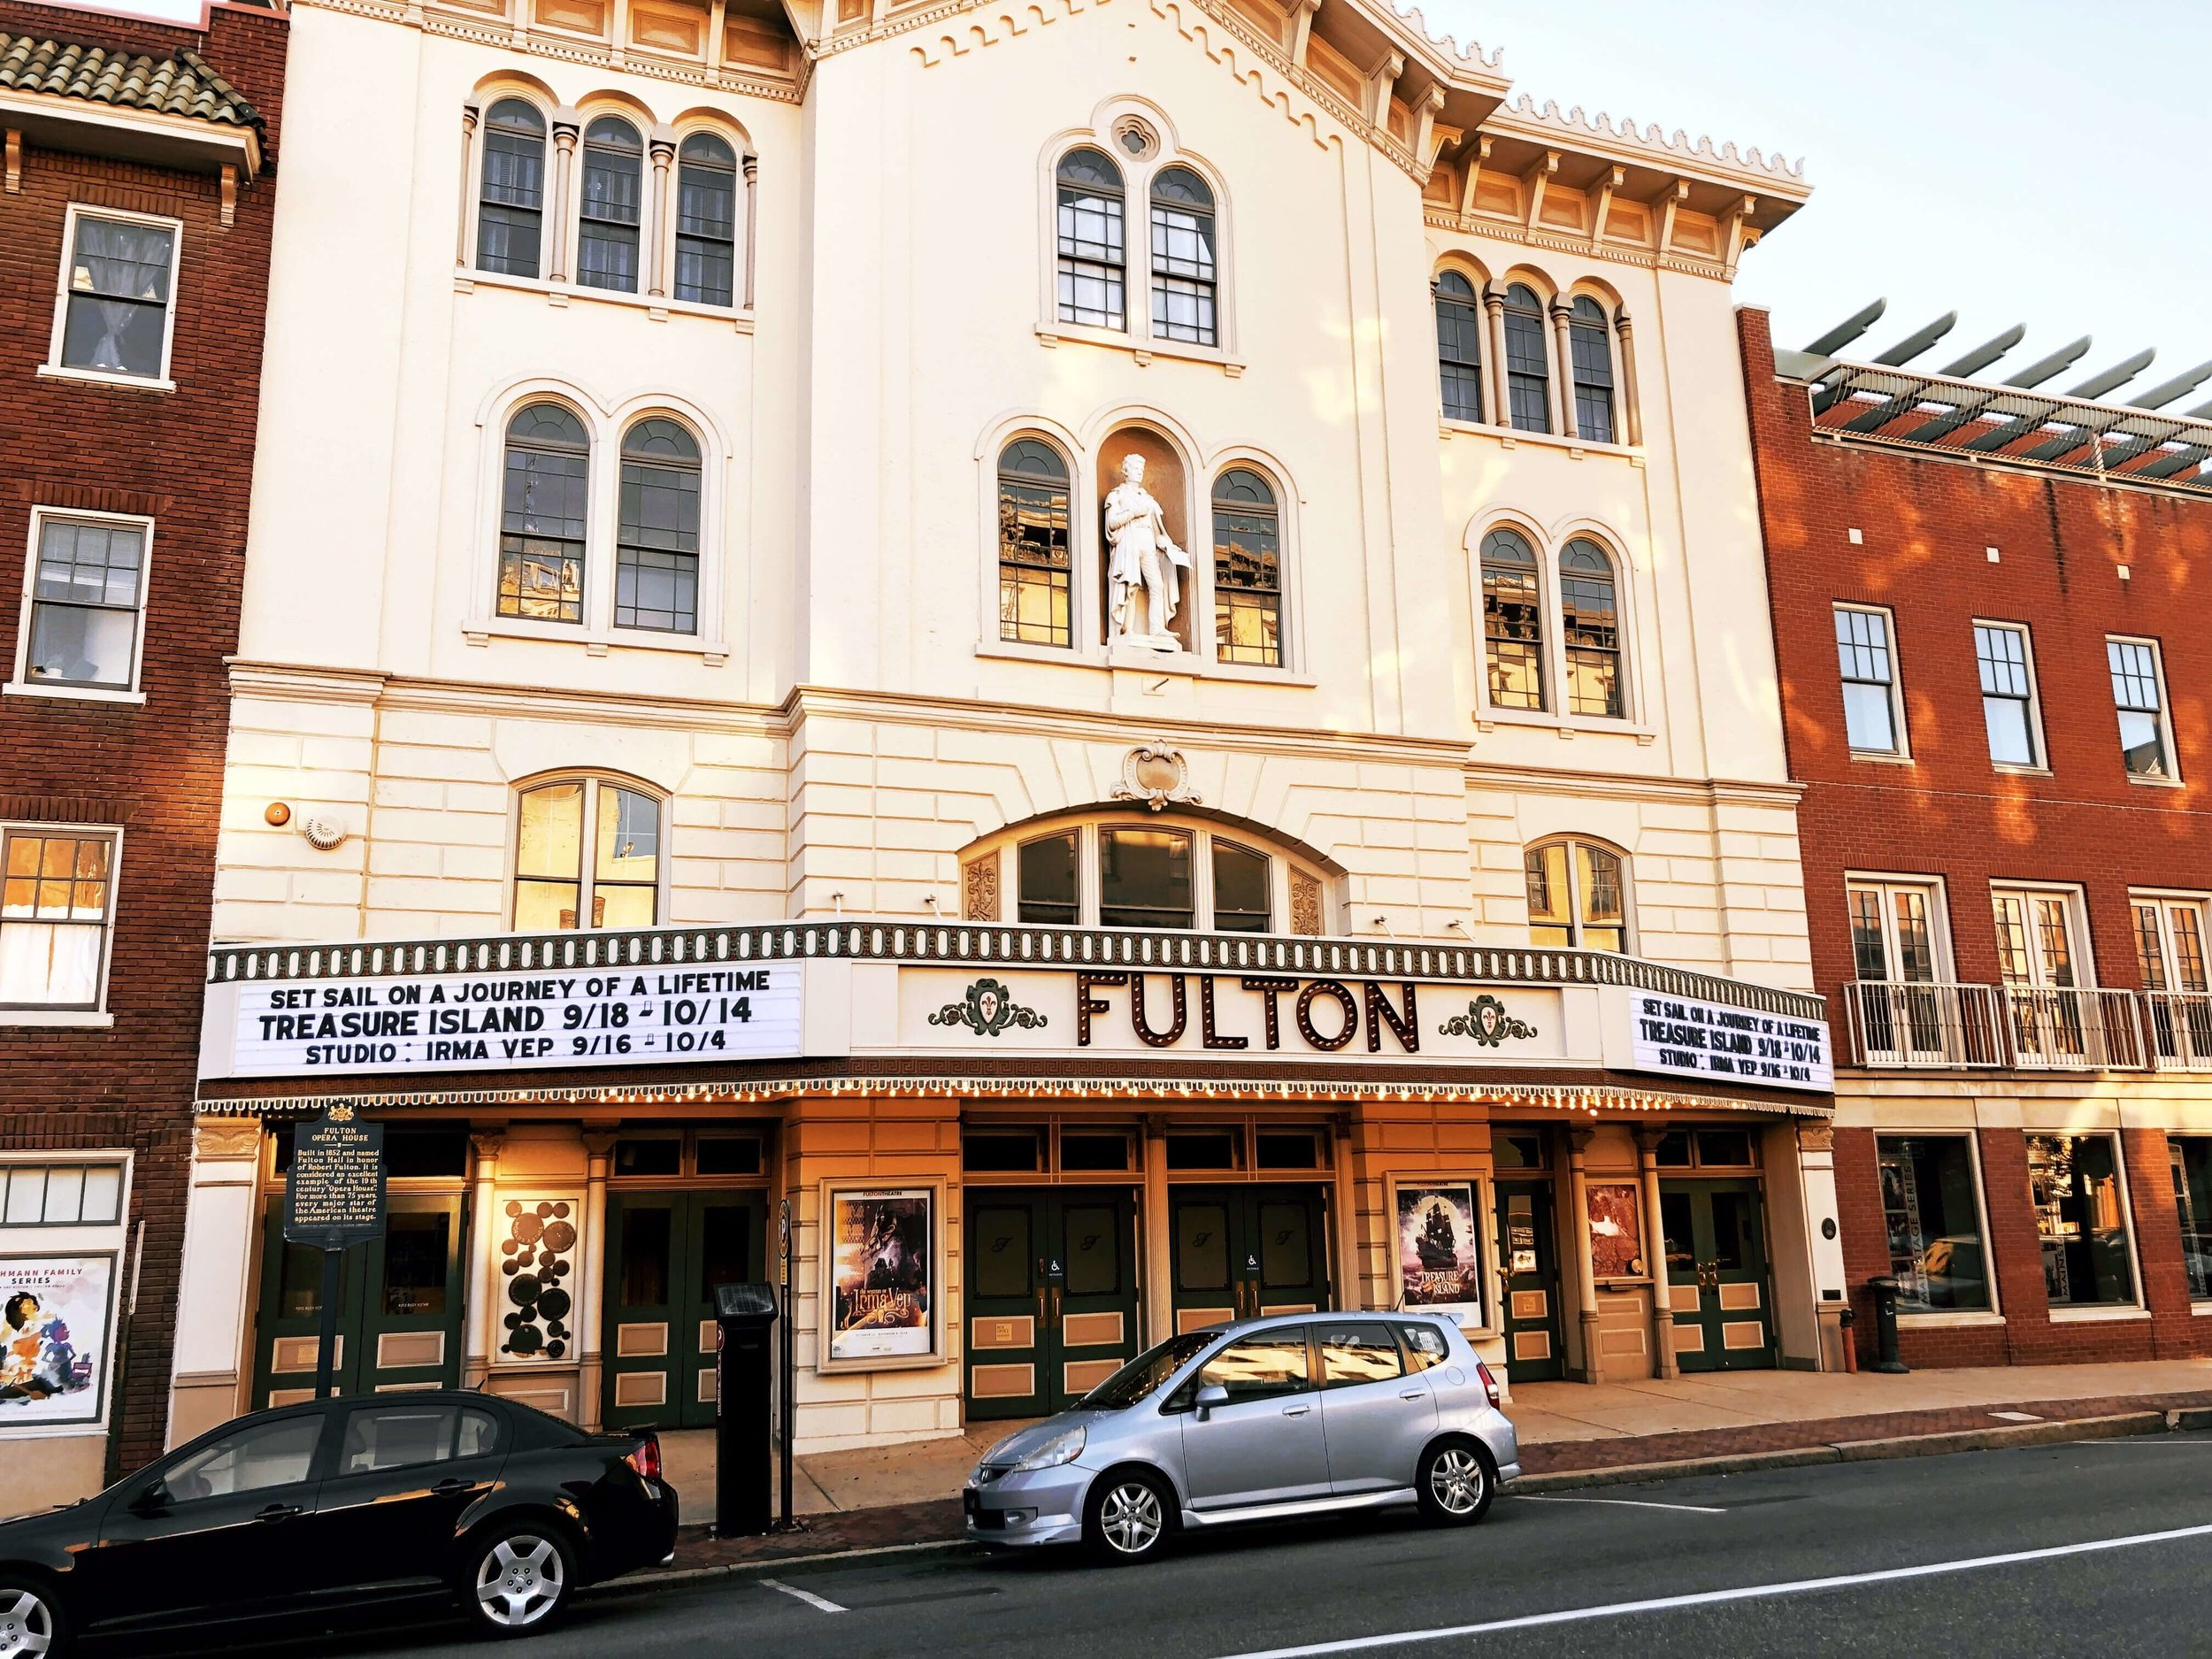 The Fulton Theatre